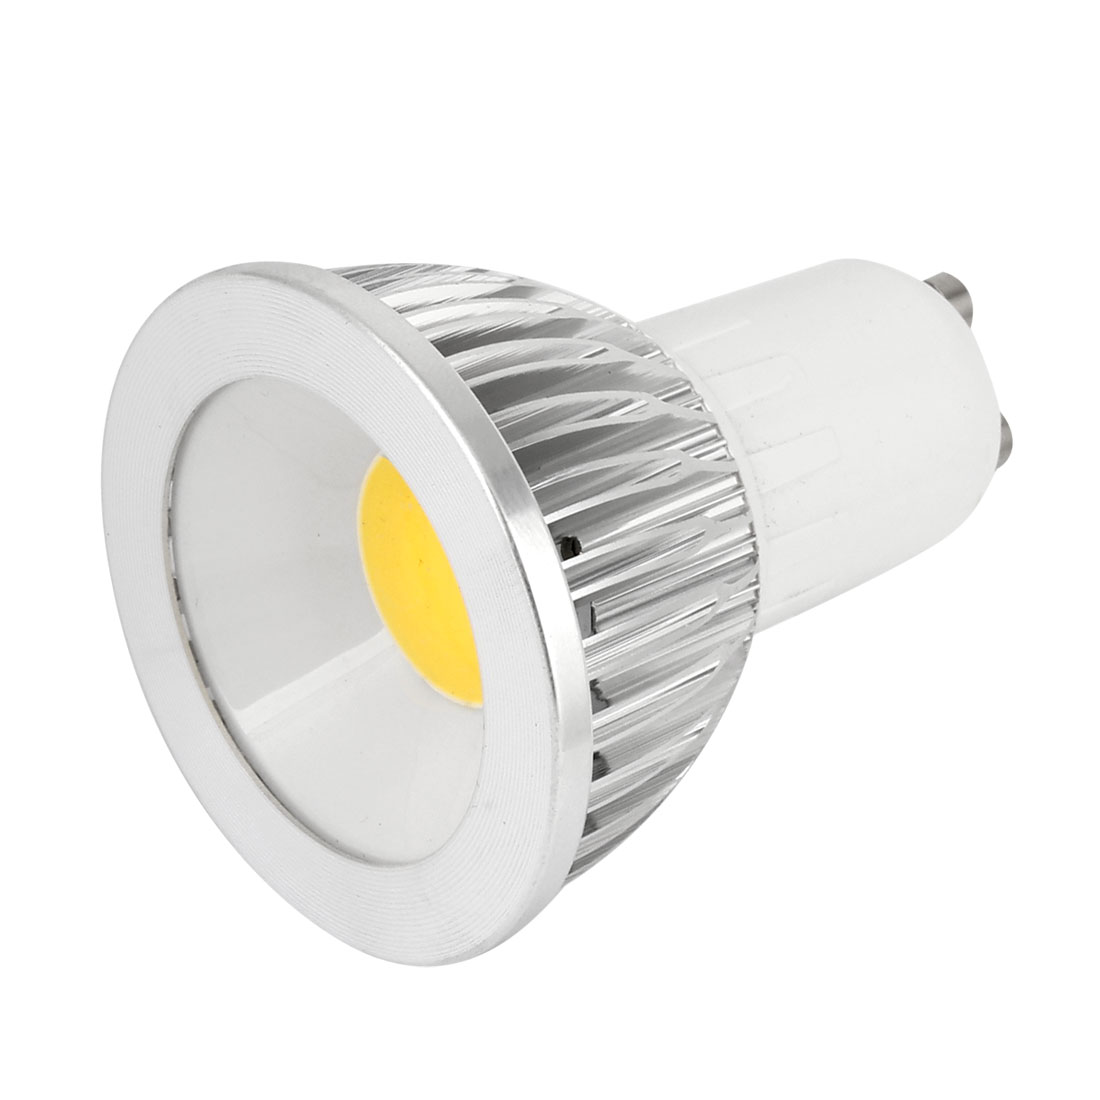 AC 85-265V 6W 360-390LM GU10 Warm White Light COB LED Downlight Lamp Bulb